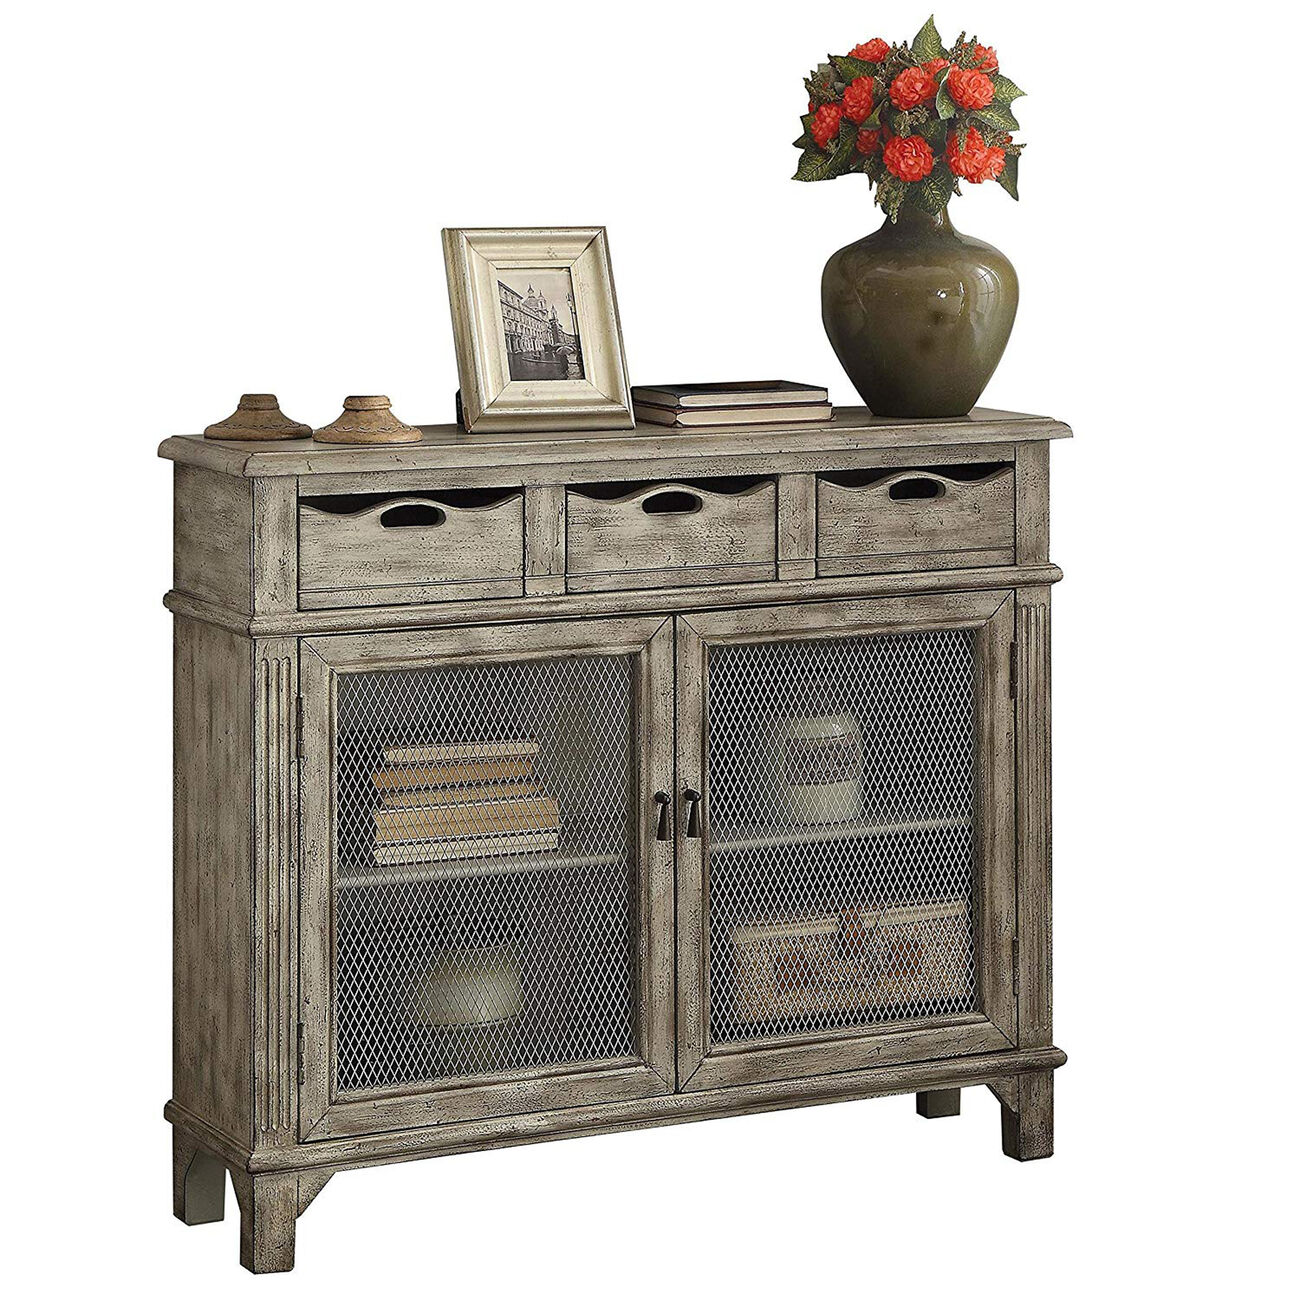 Vernon Console Table With 3 Drawers and 2 Doors